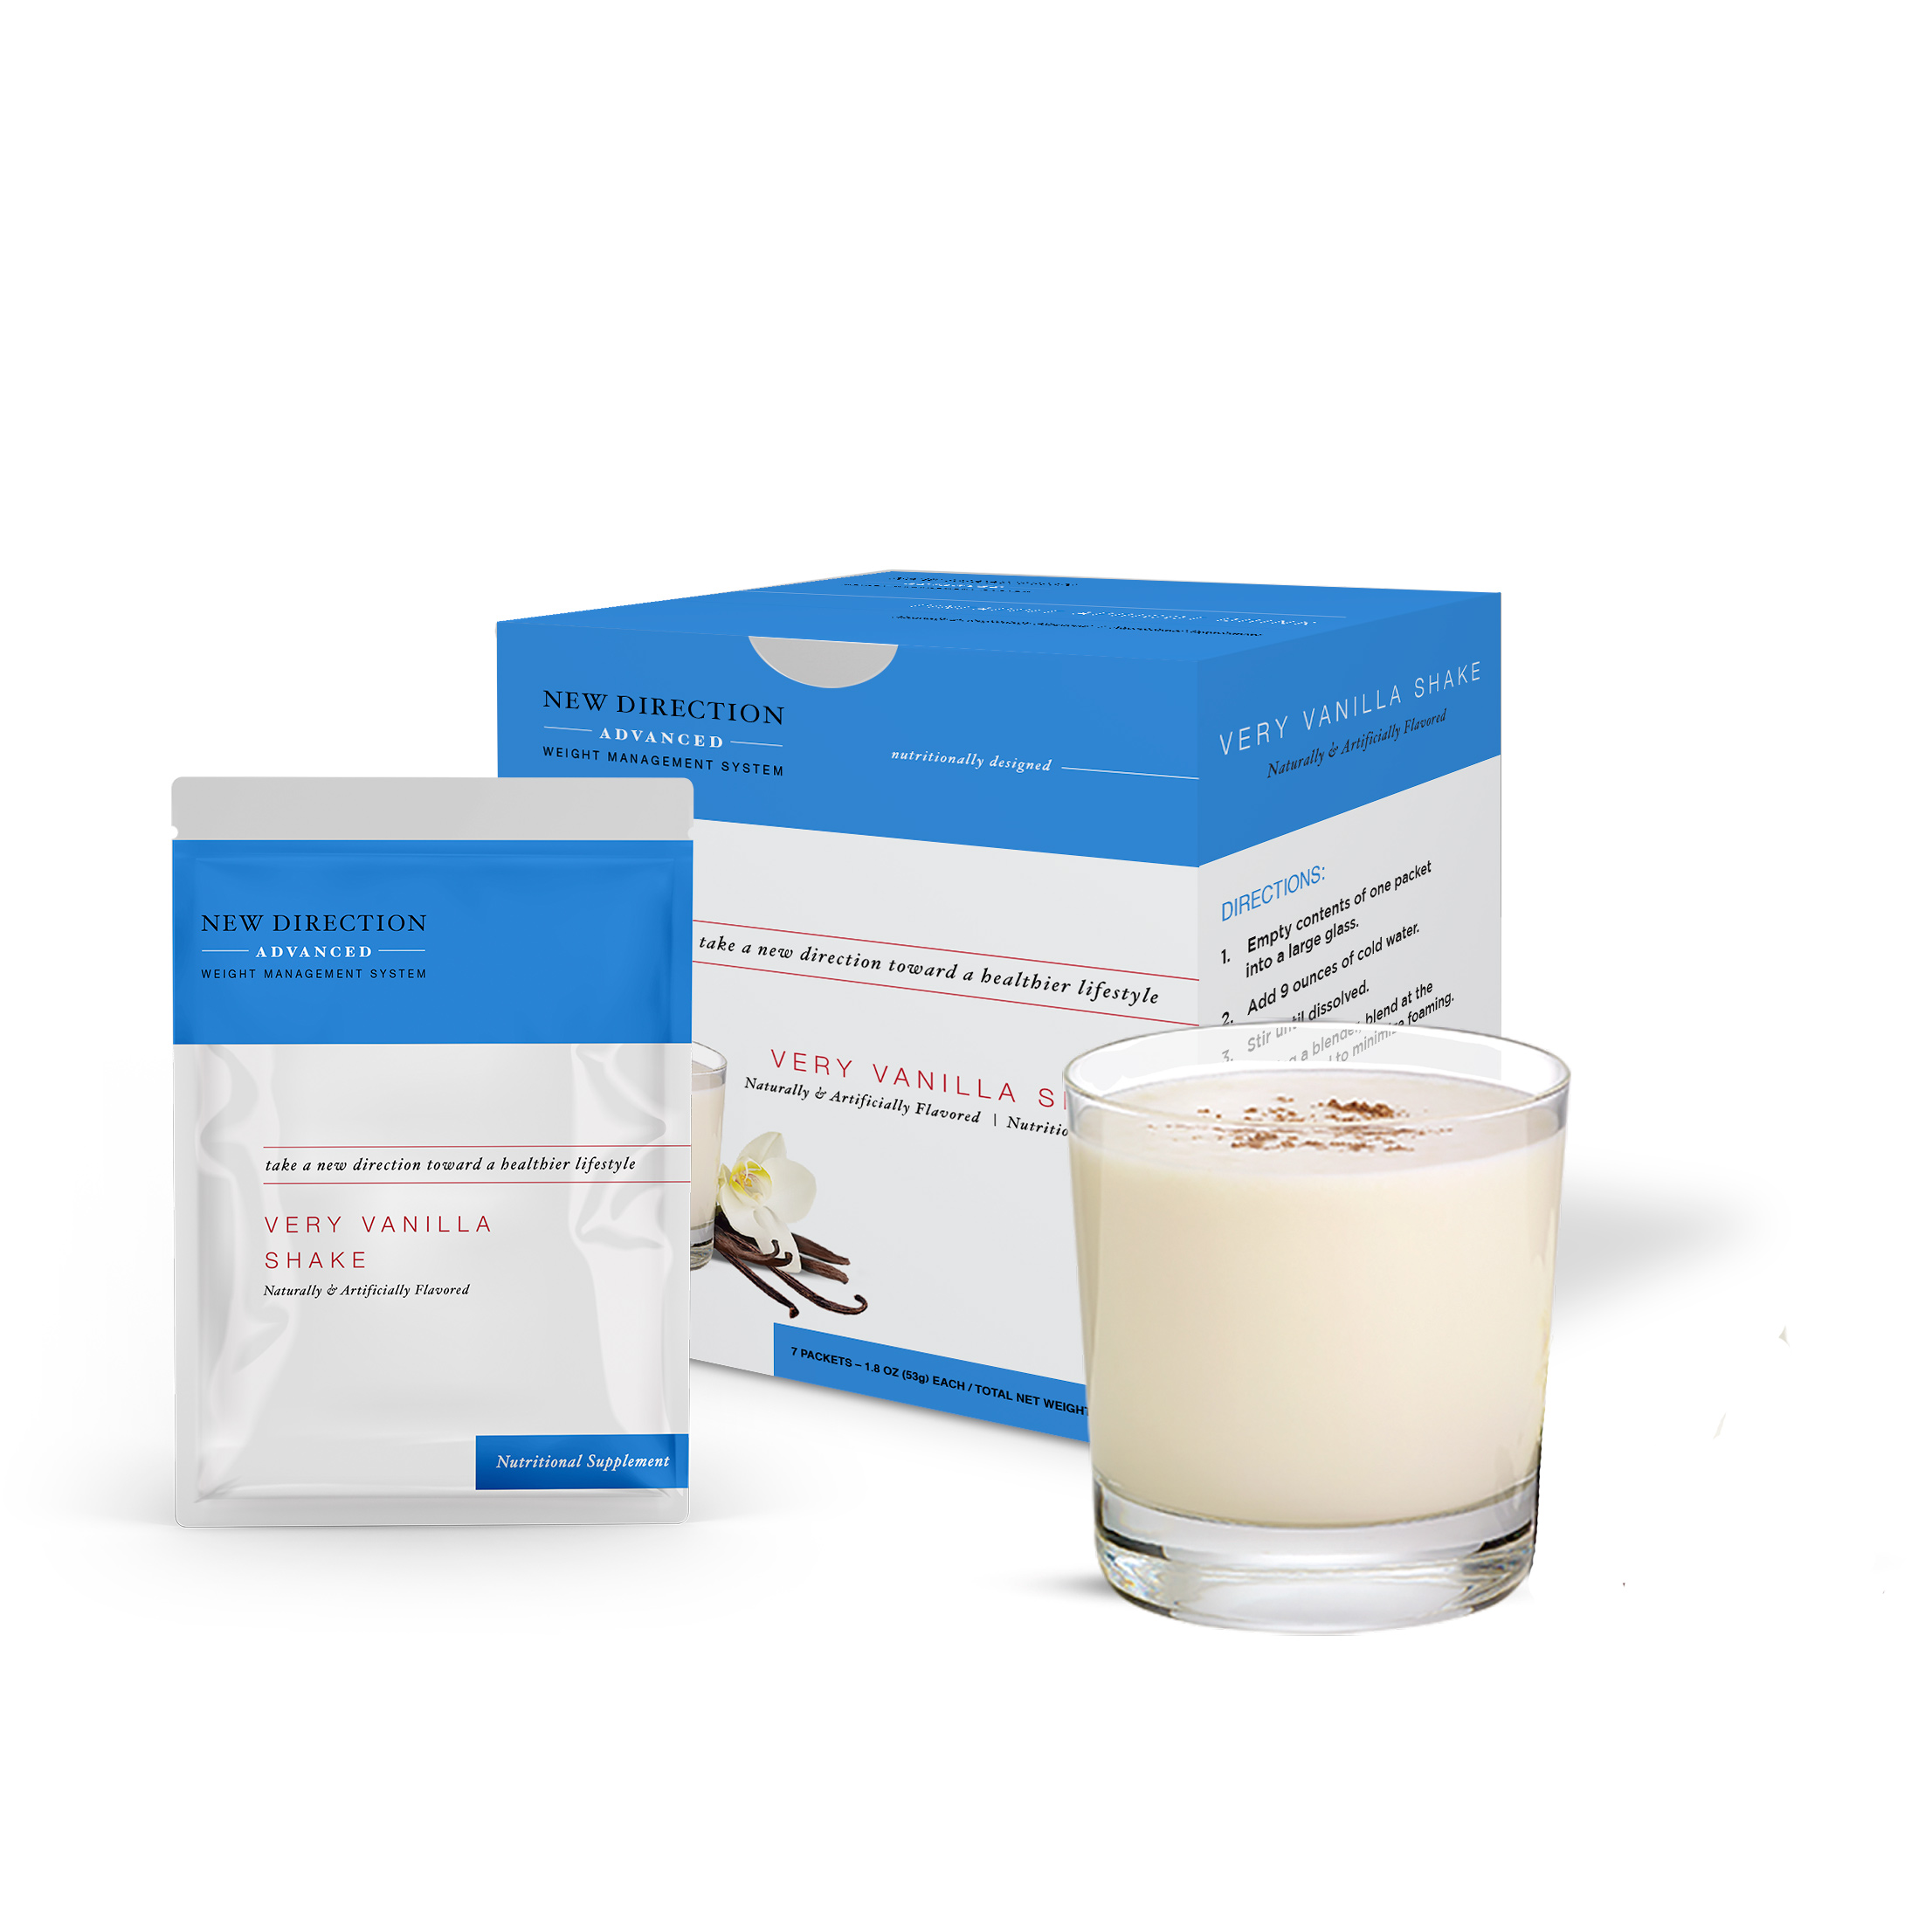 New Direction Advanced Vanilla Shake product line by Robard